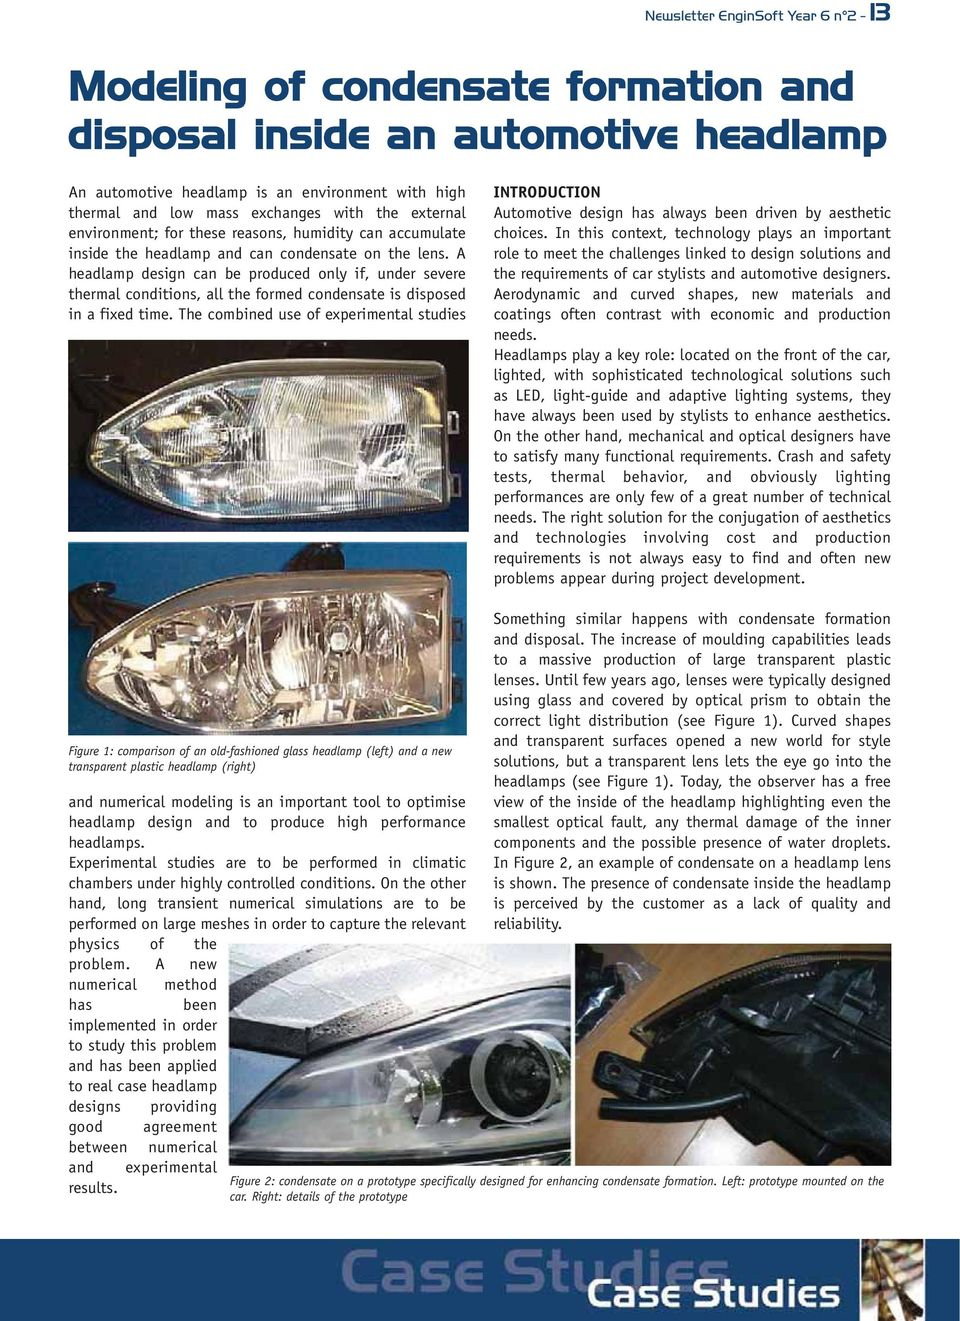 A headlamp design can be produced only if, under severe thermal conditions, all the formed condensate is disposed in a fixed time.